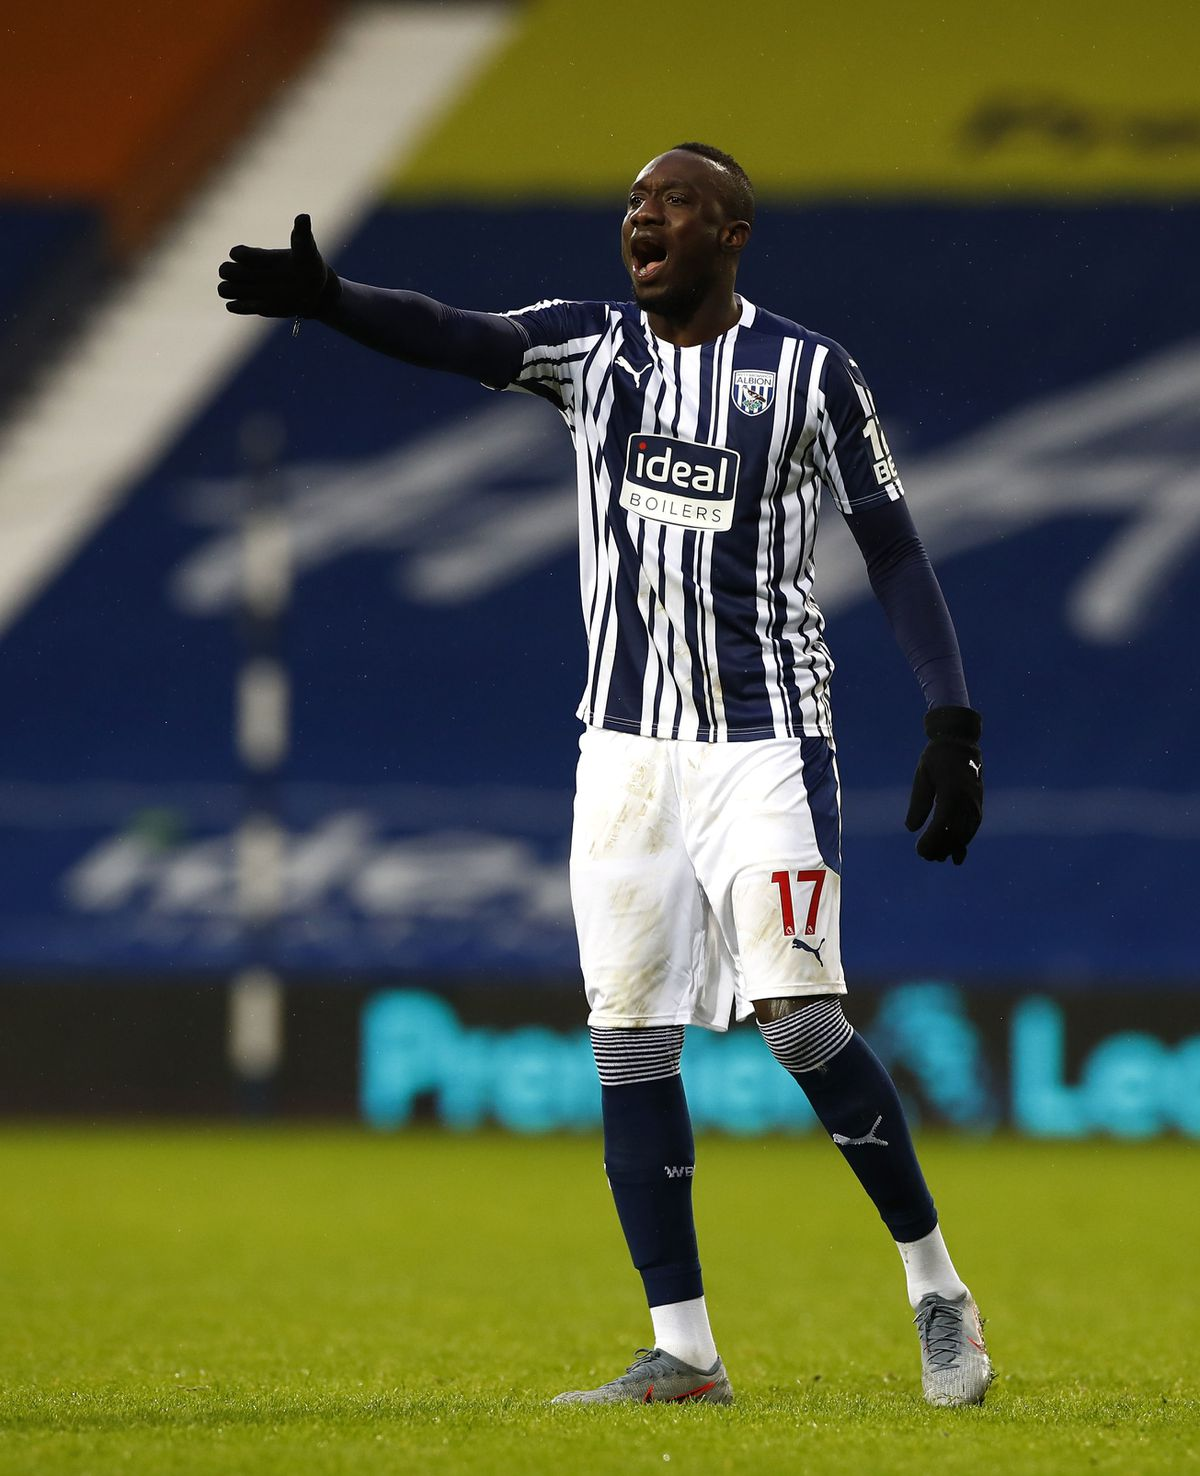 West Bromwich Albion's Mbaye Diagne